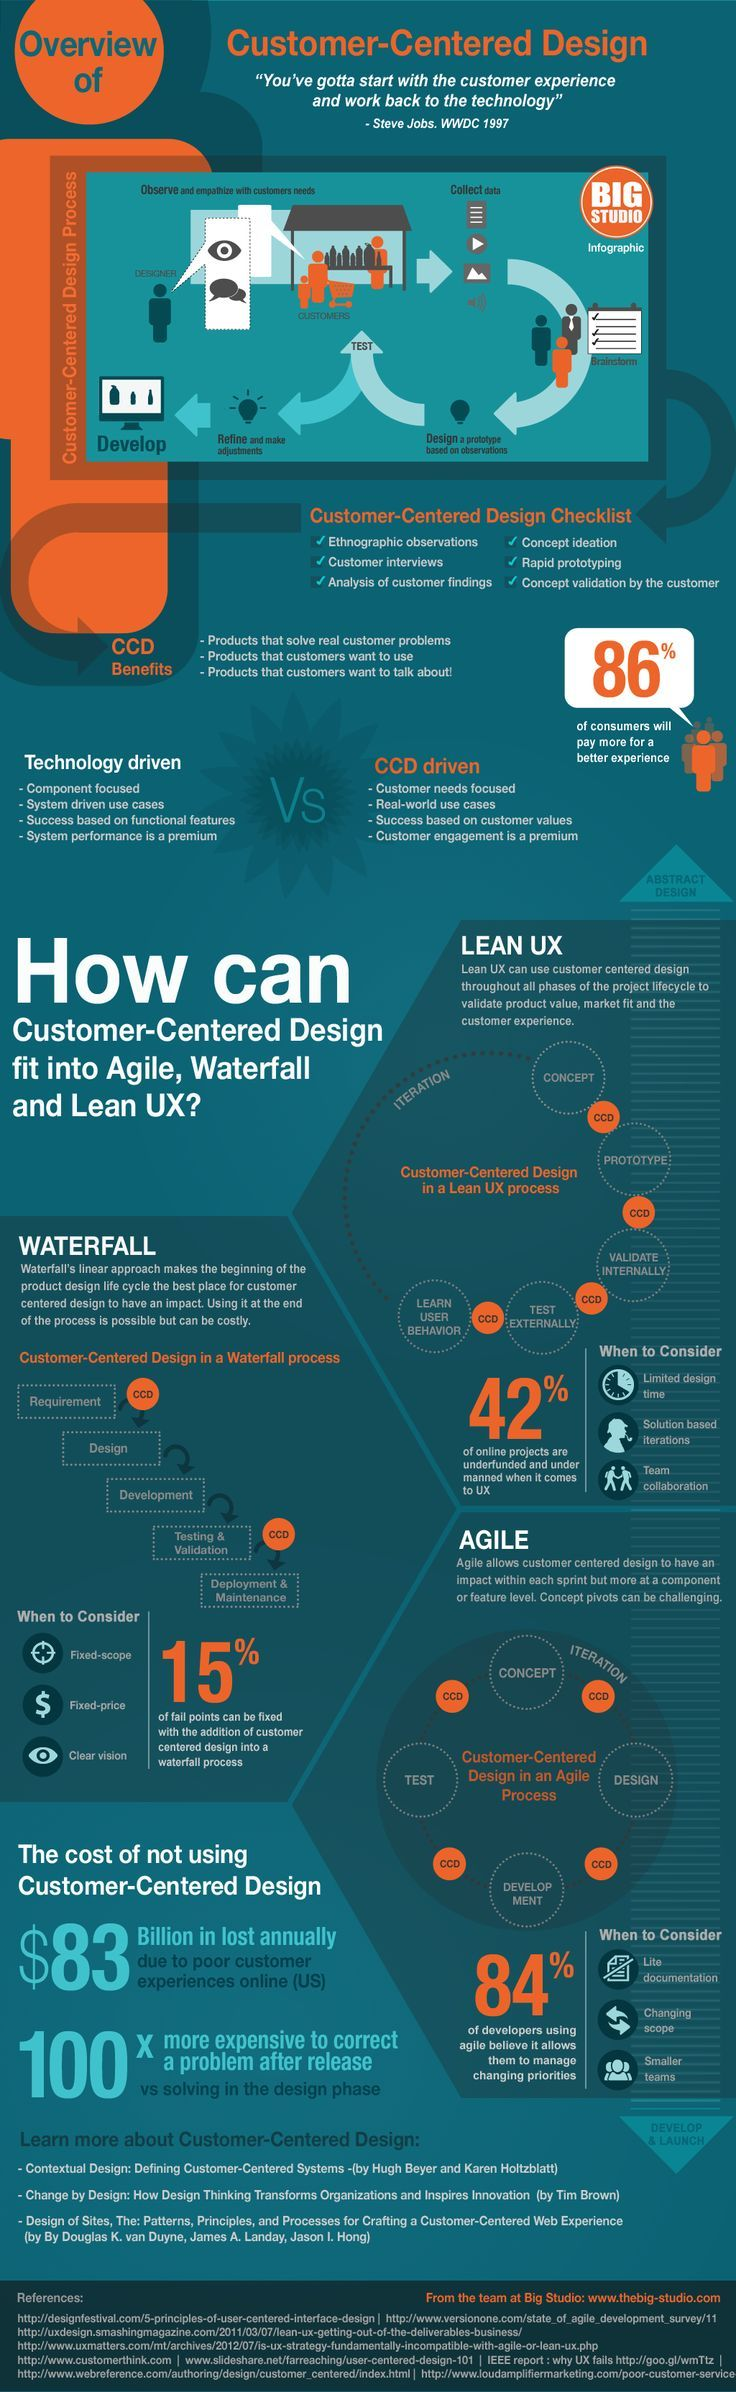 372 best images about design thinking innovation on for Waterfall vs design thinking